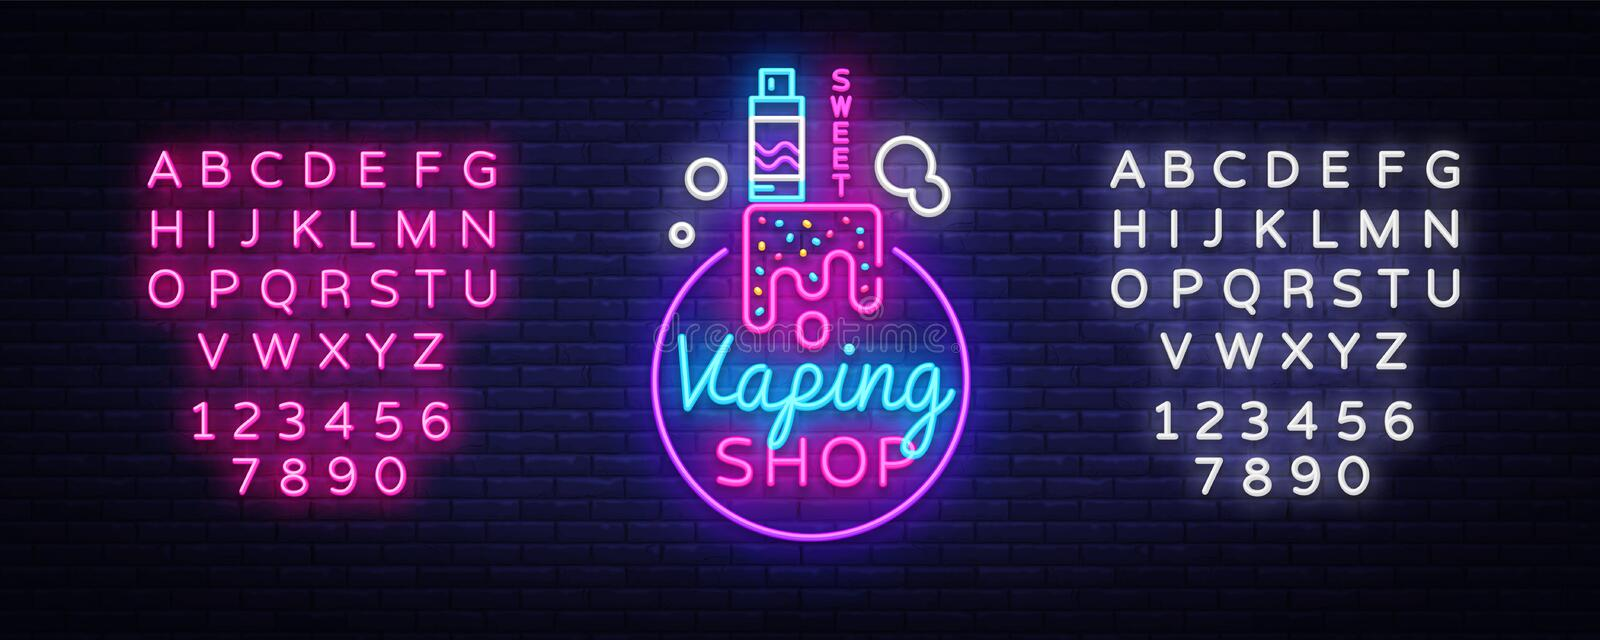 Logo electronic cigarette in neon style. Vape Shop Neon Sign, Sweet Vape Shop Concept, Emblem, Bright Night Signboard stock illustration